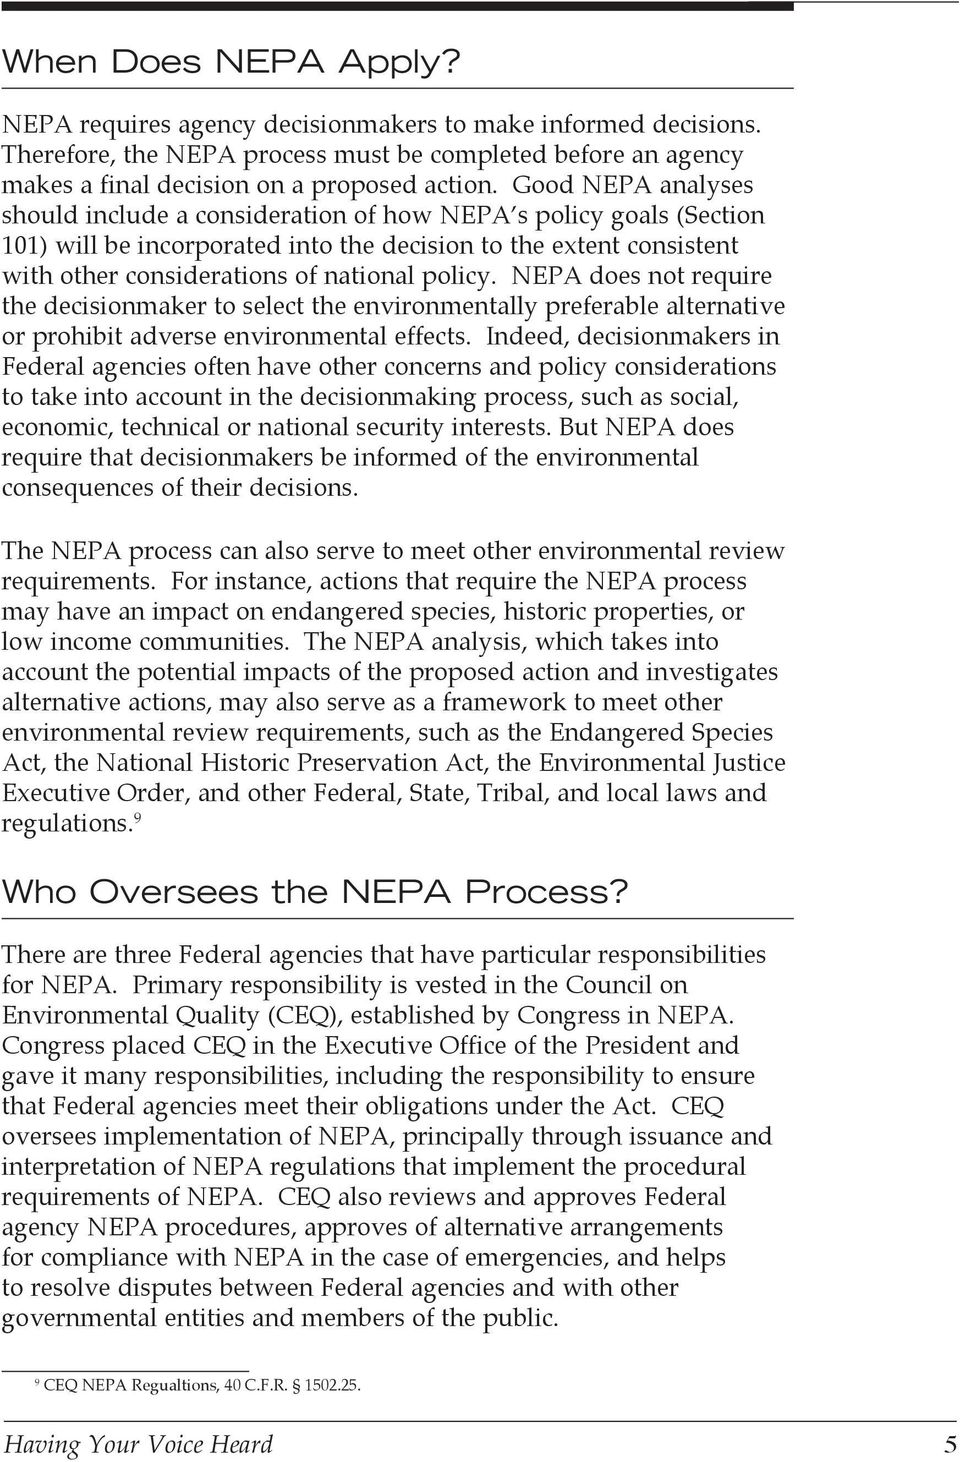 NEPA does not require the decisionmaker to select the environmentally preferable alternative or prohibit adverse environmental effects.